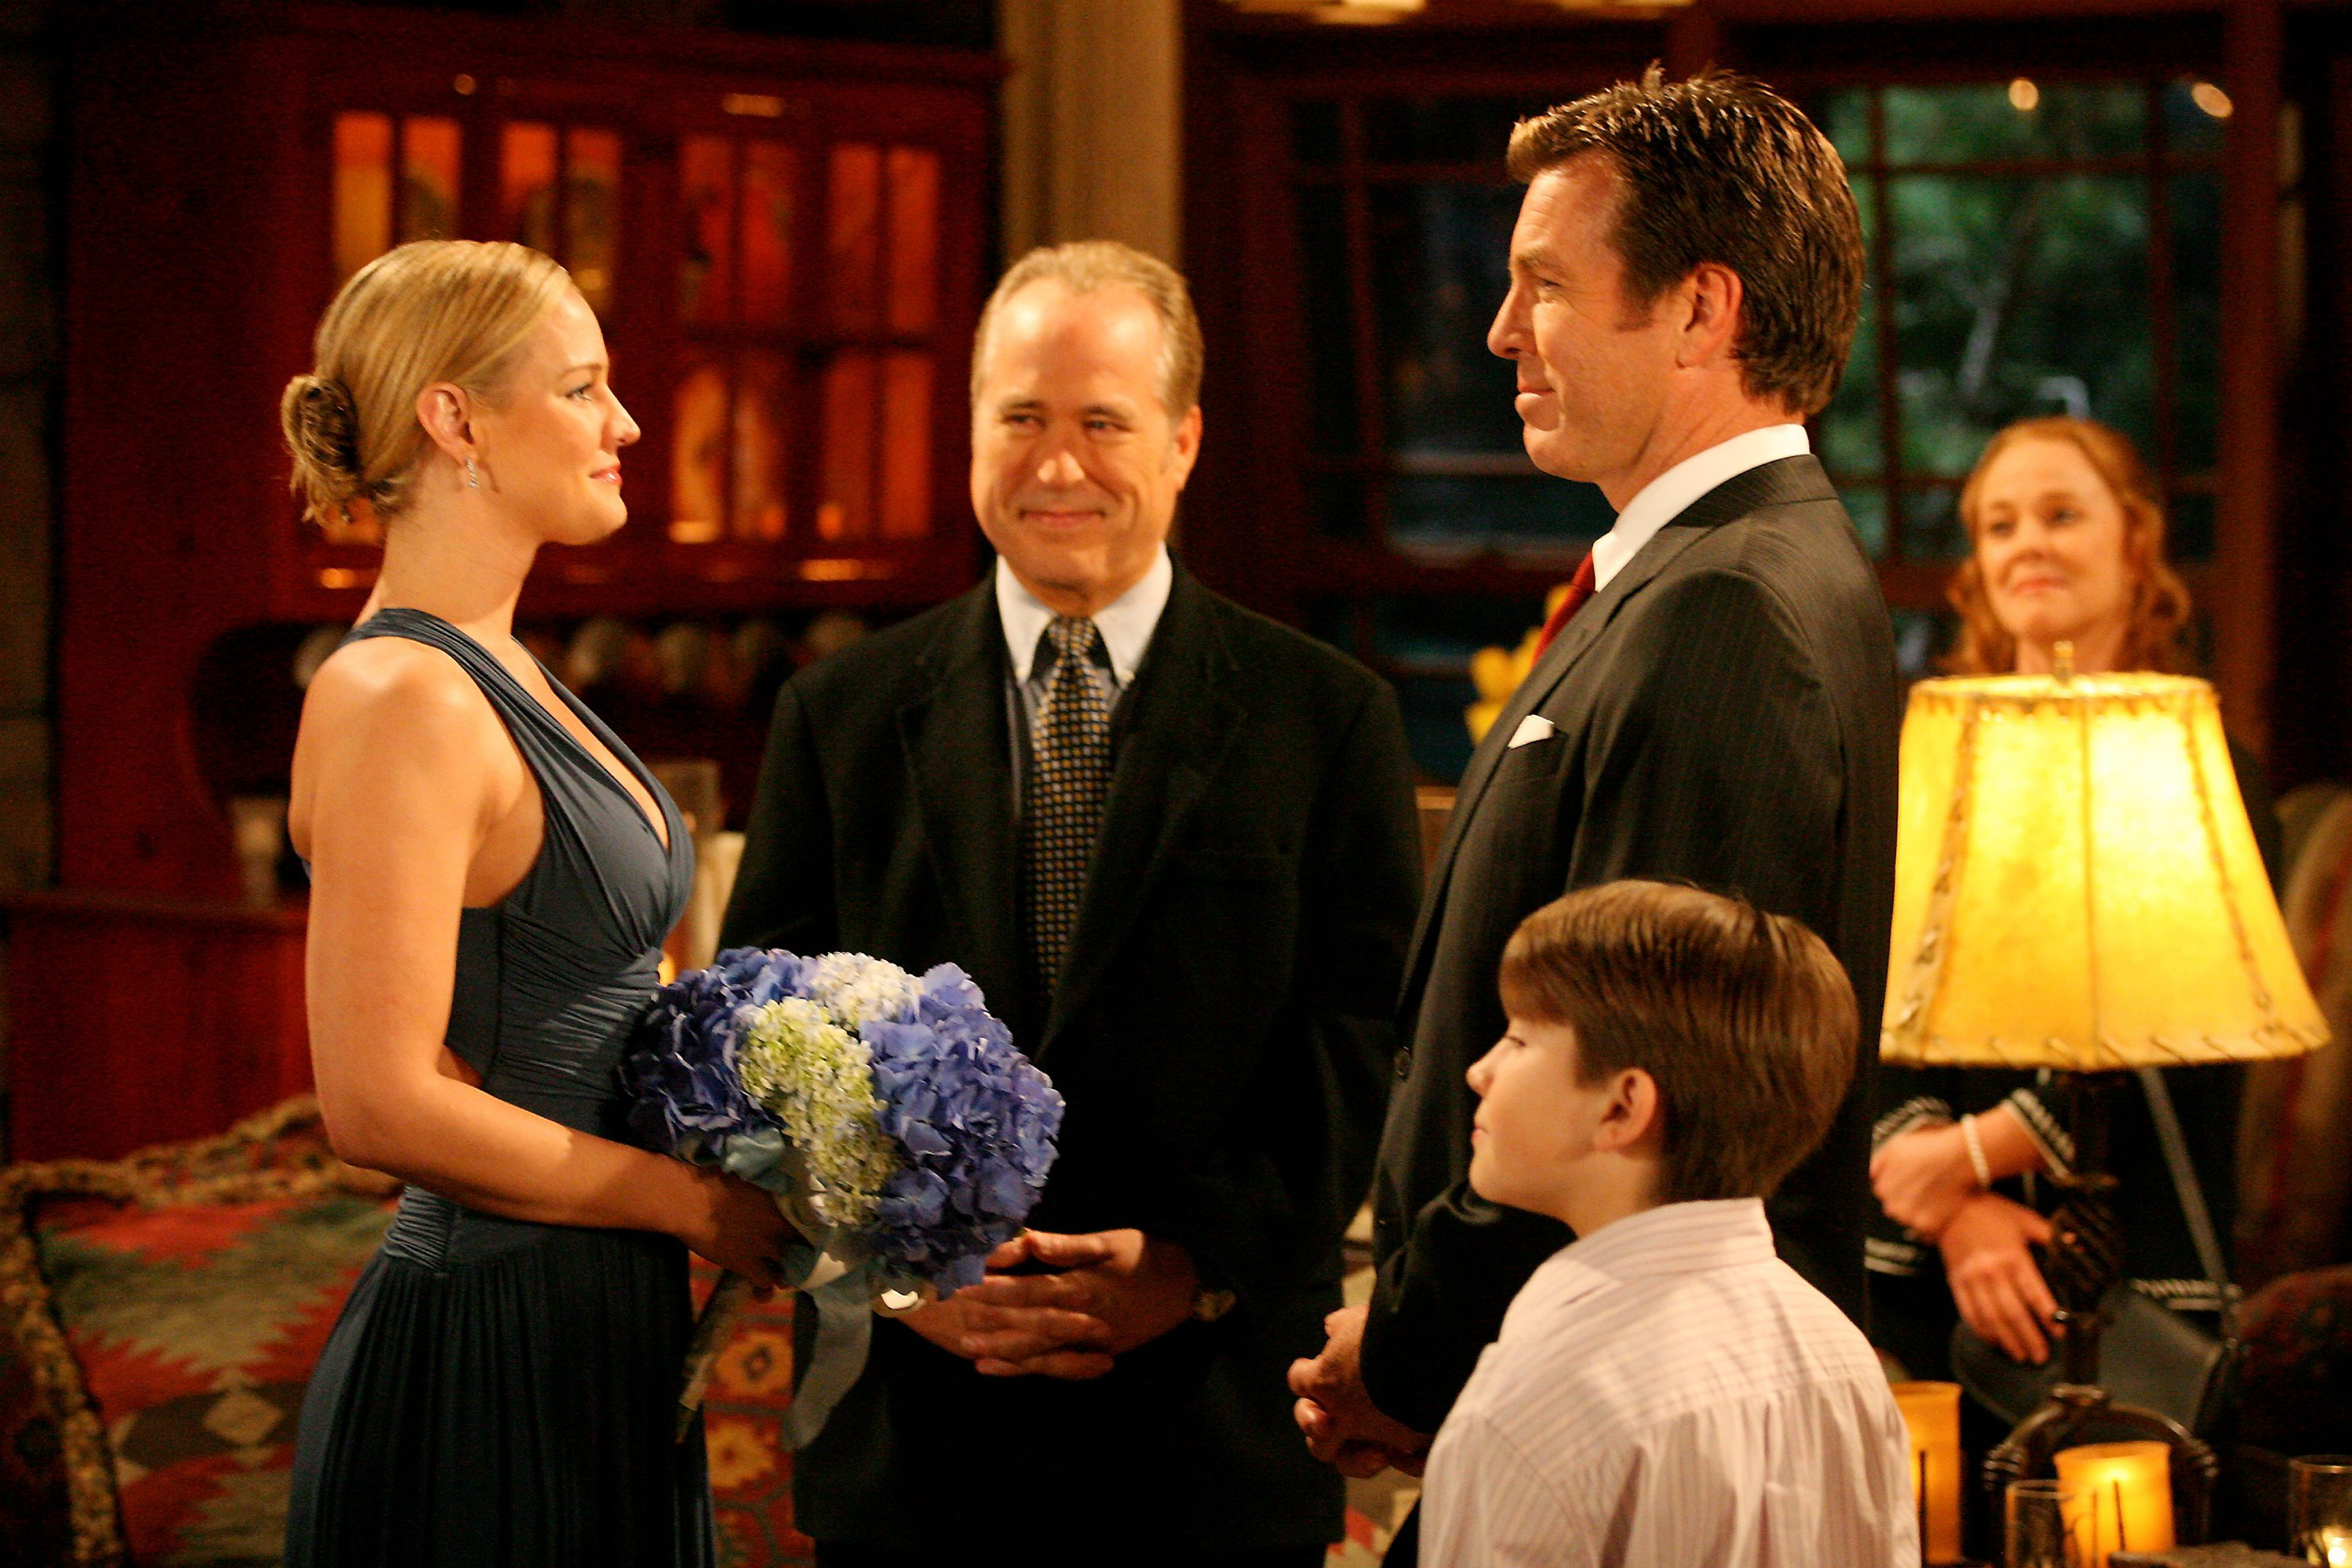 Sharon and Jack Abott married after both of their exes cheated on them.